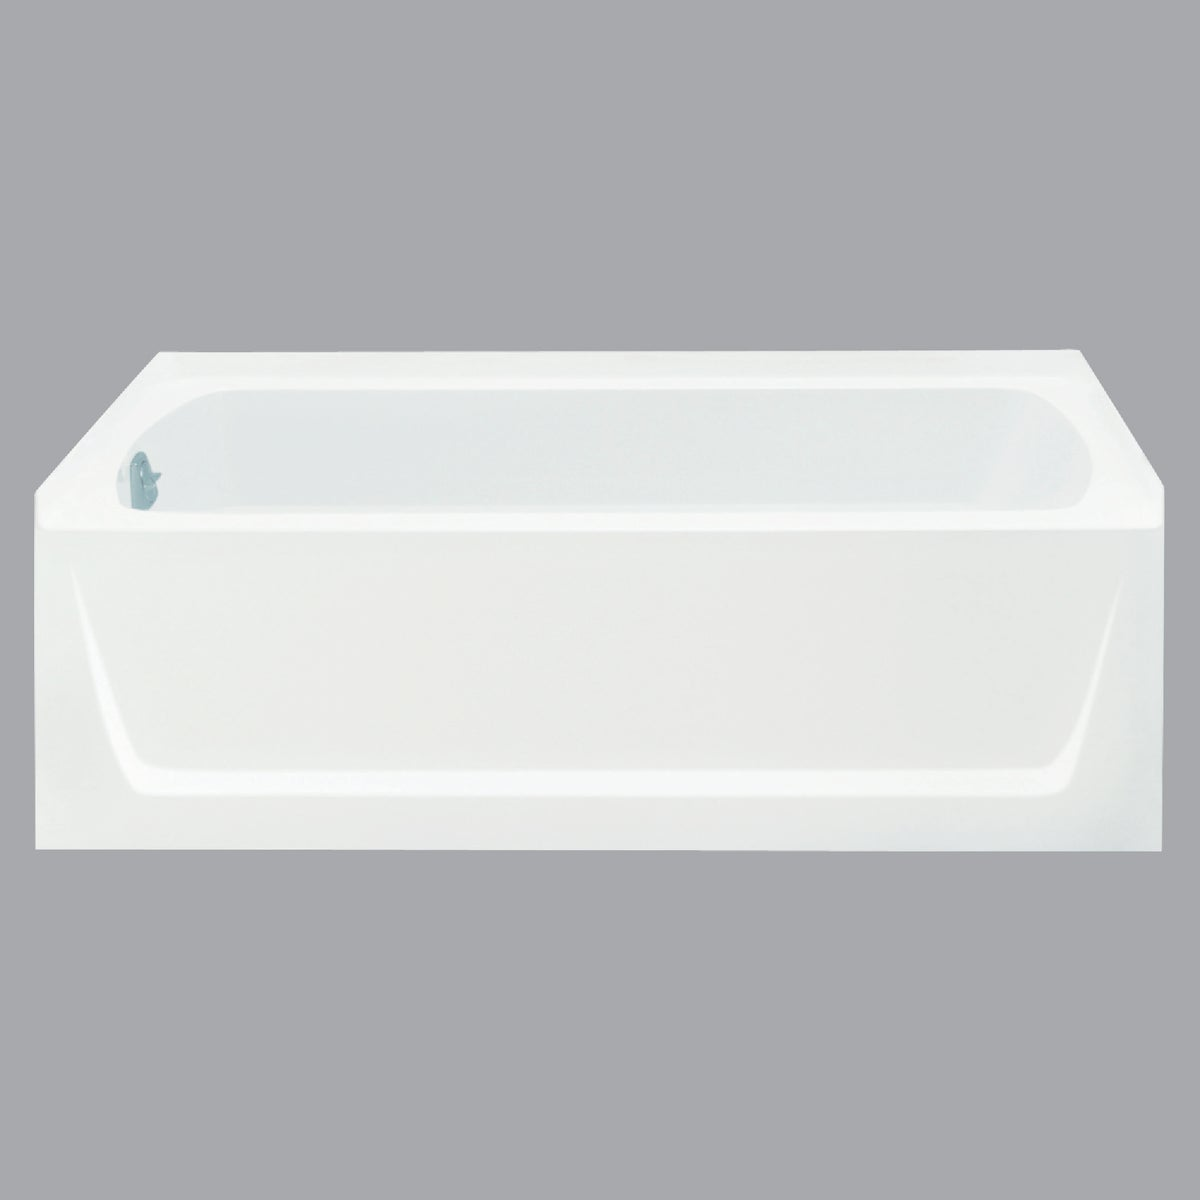 WHITE ENSEMBLE LH TUB